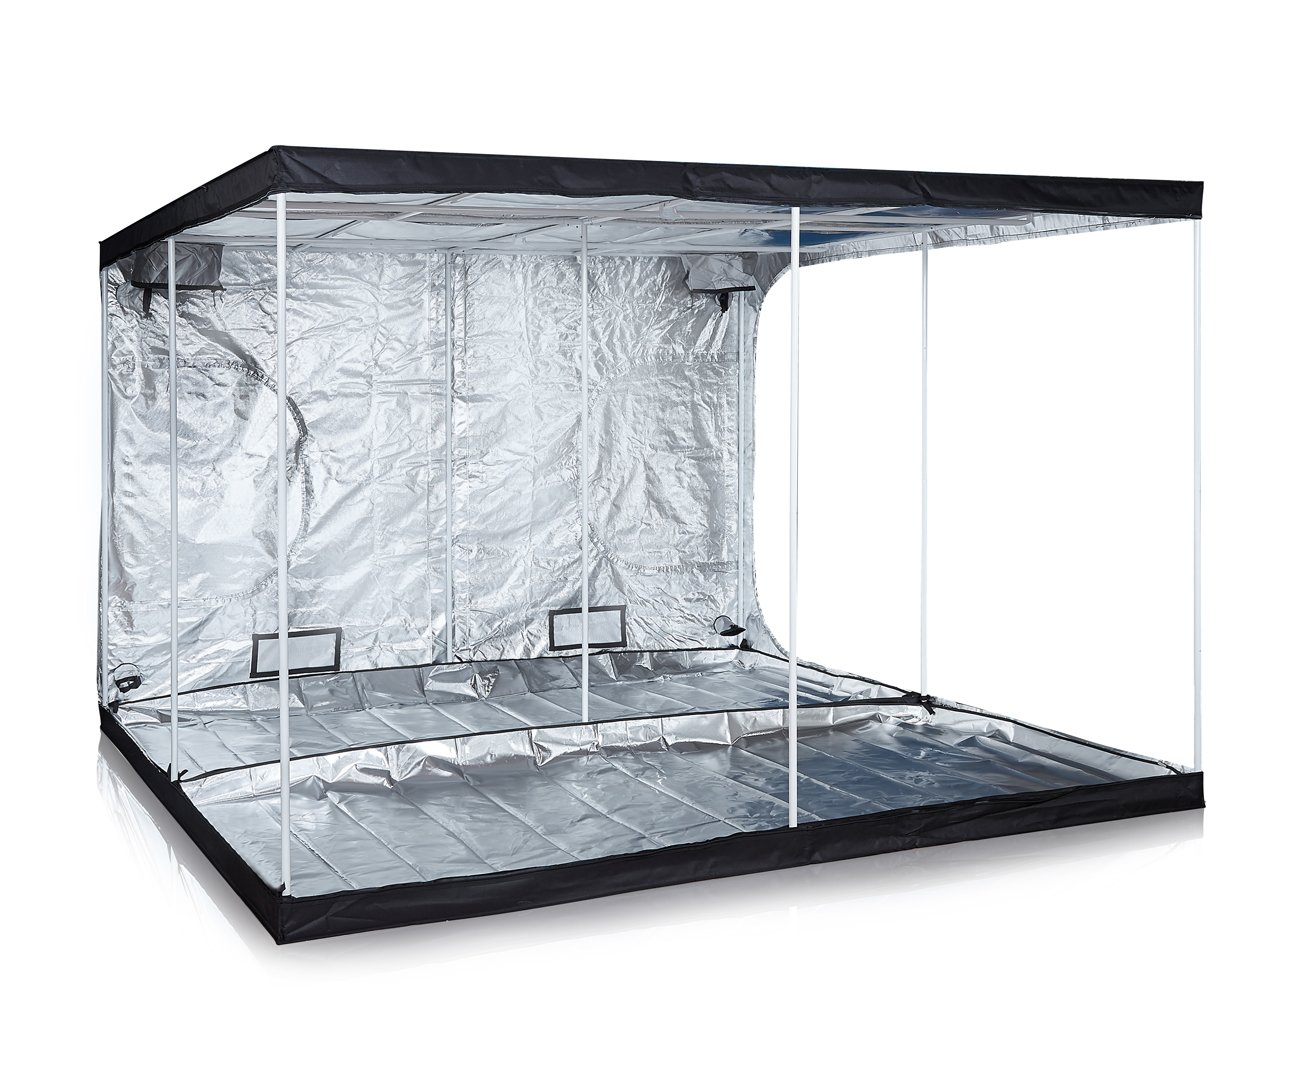 Anjeet 120''x120''x80'' 48''x48''x80'' 24''x24''x56'' Reflective Mylar Hydroponic Grow Tent for Indoor Plant Growing Non Toxic Hut (120''x120''x80'')